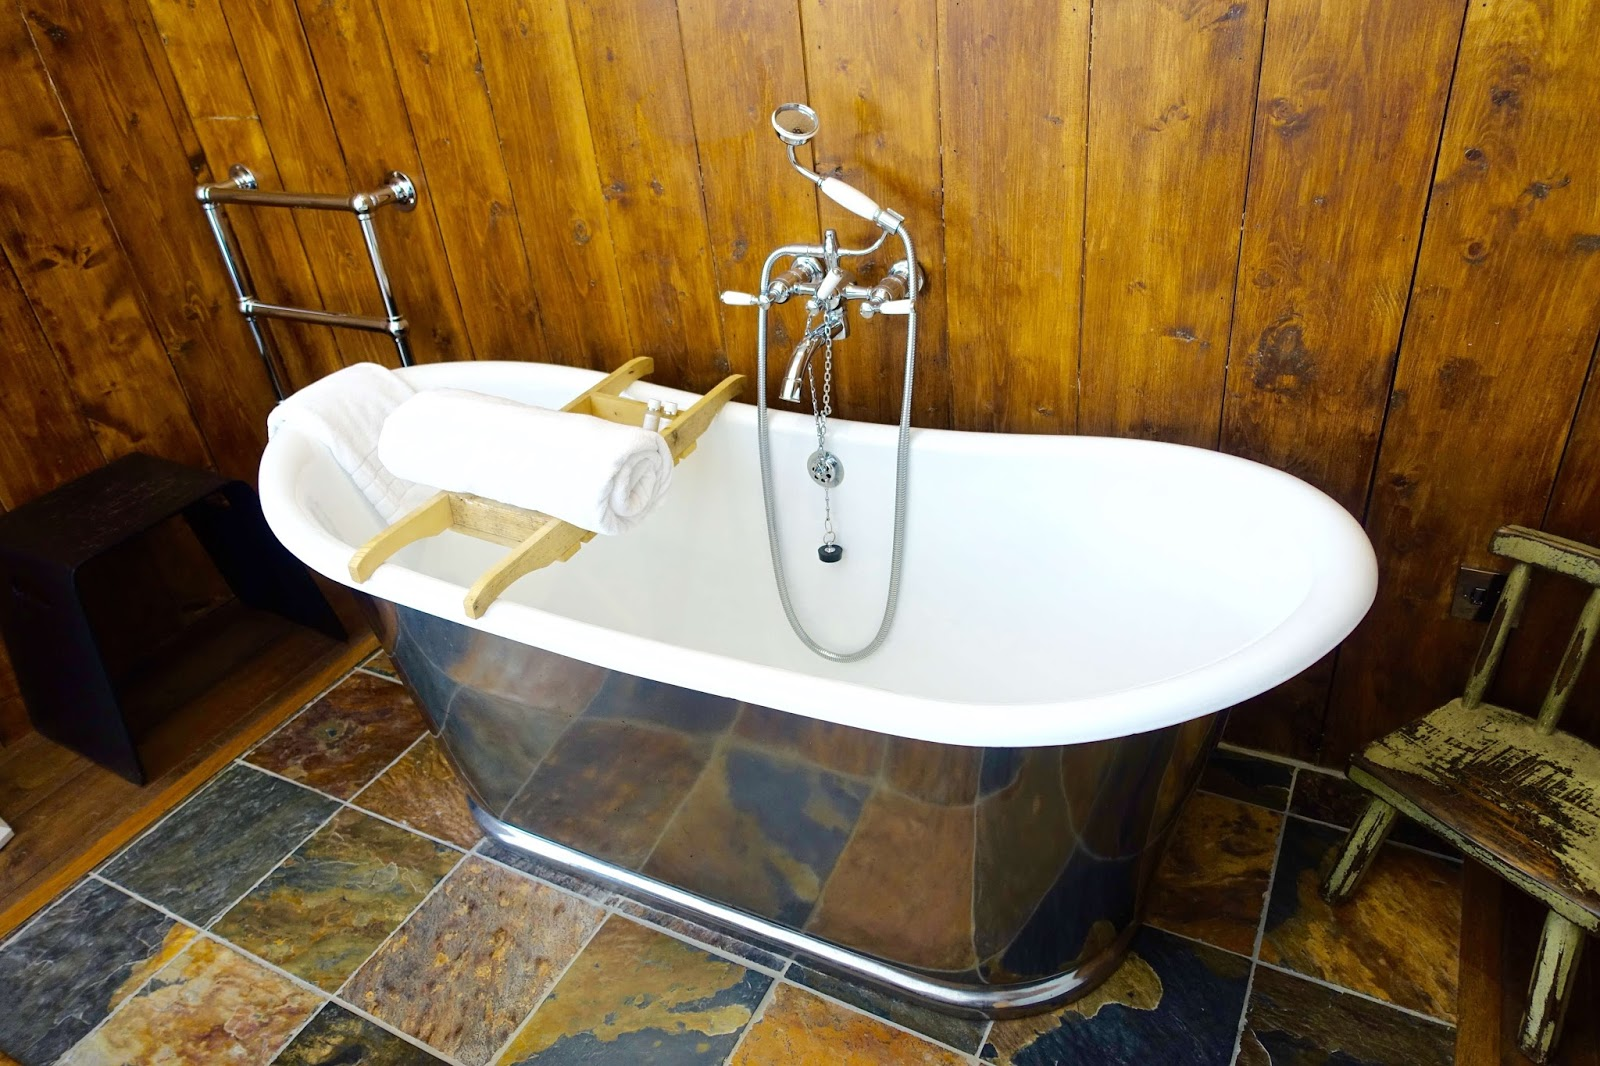 eckington manor room with roll top bath